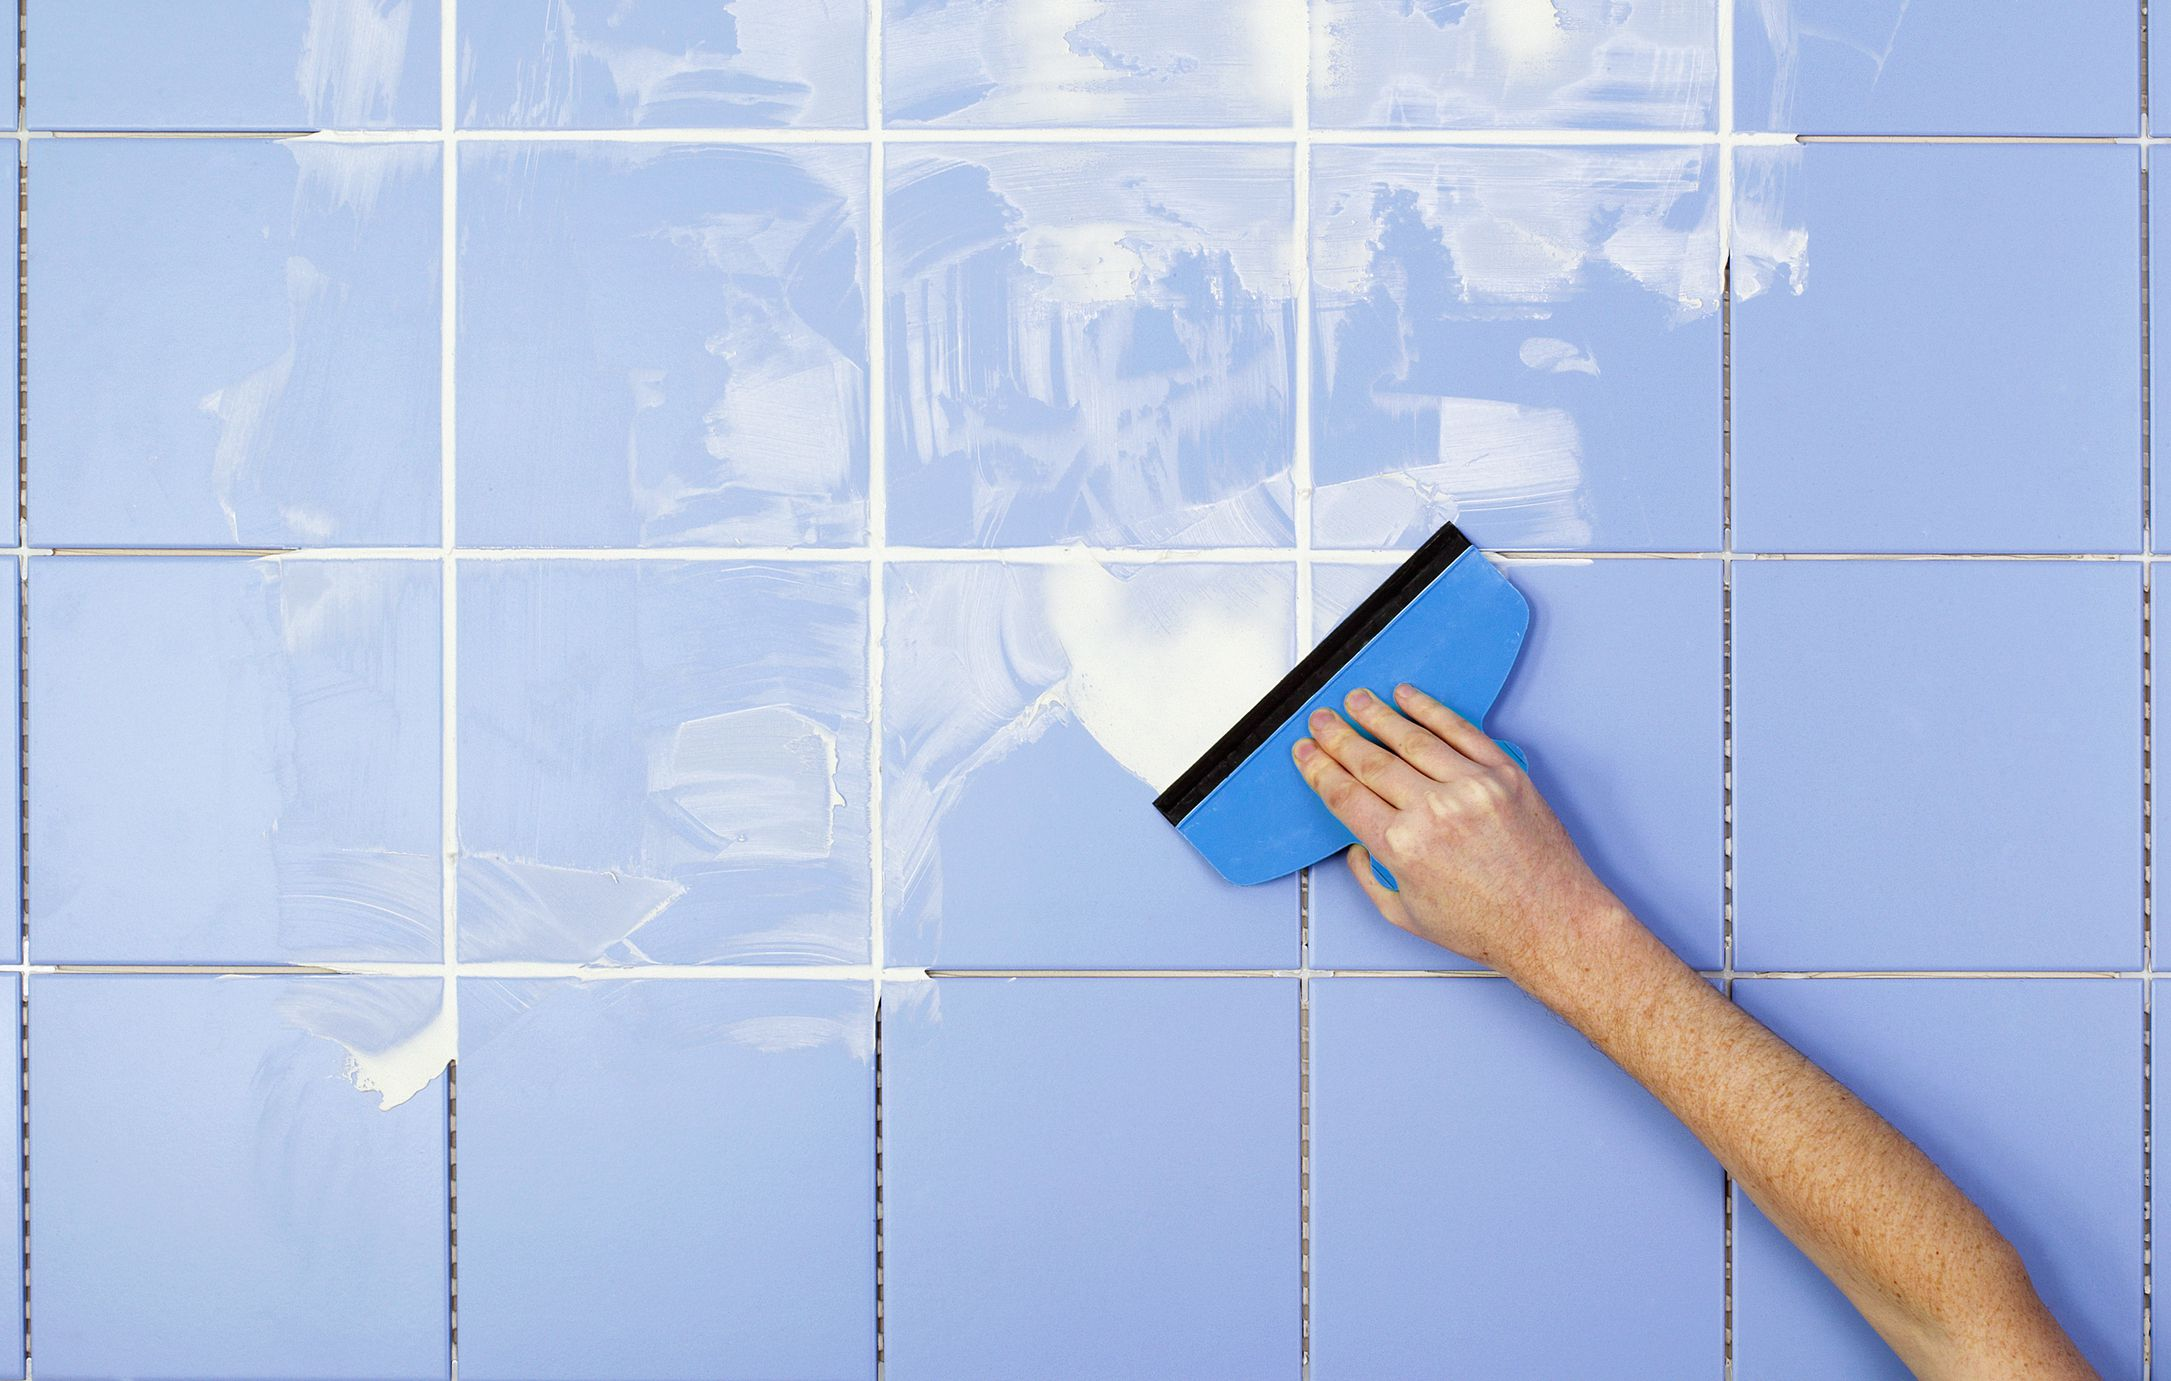 Tips for Using a Rubber Grout Float